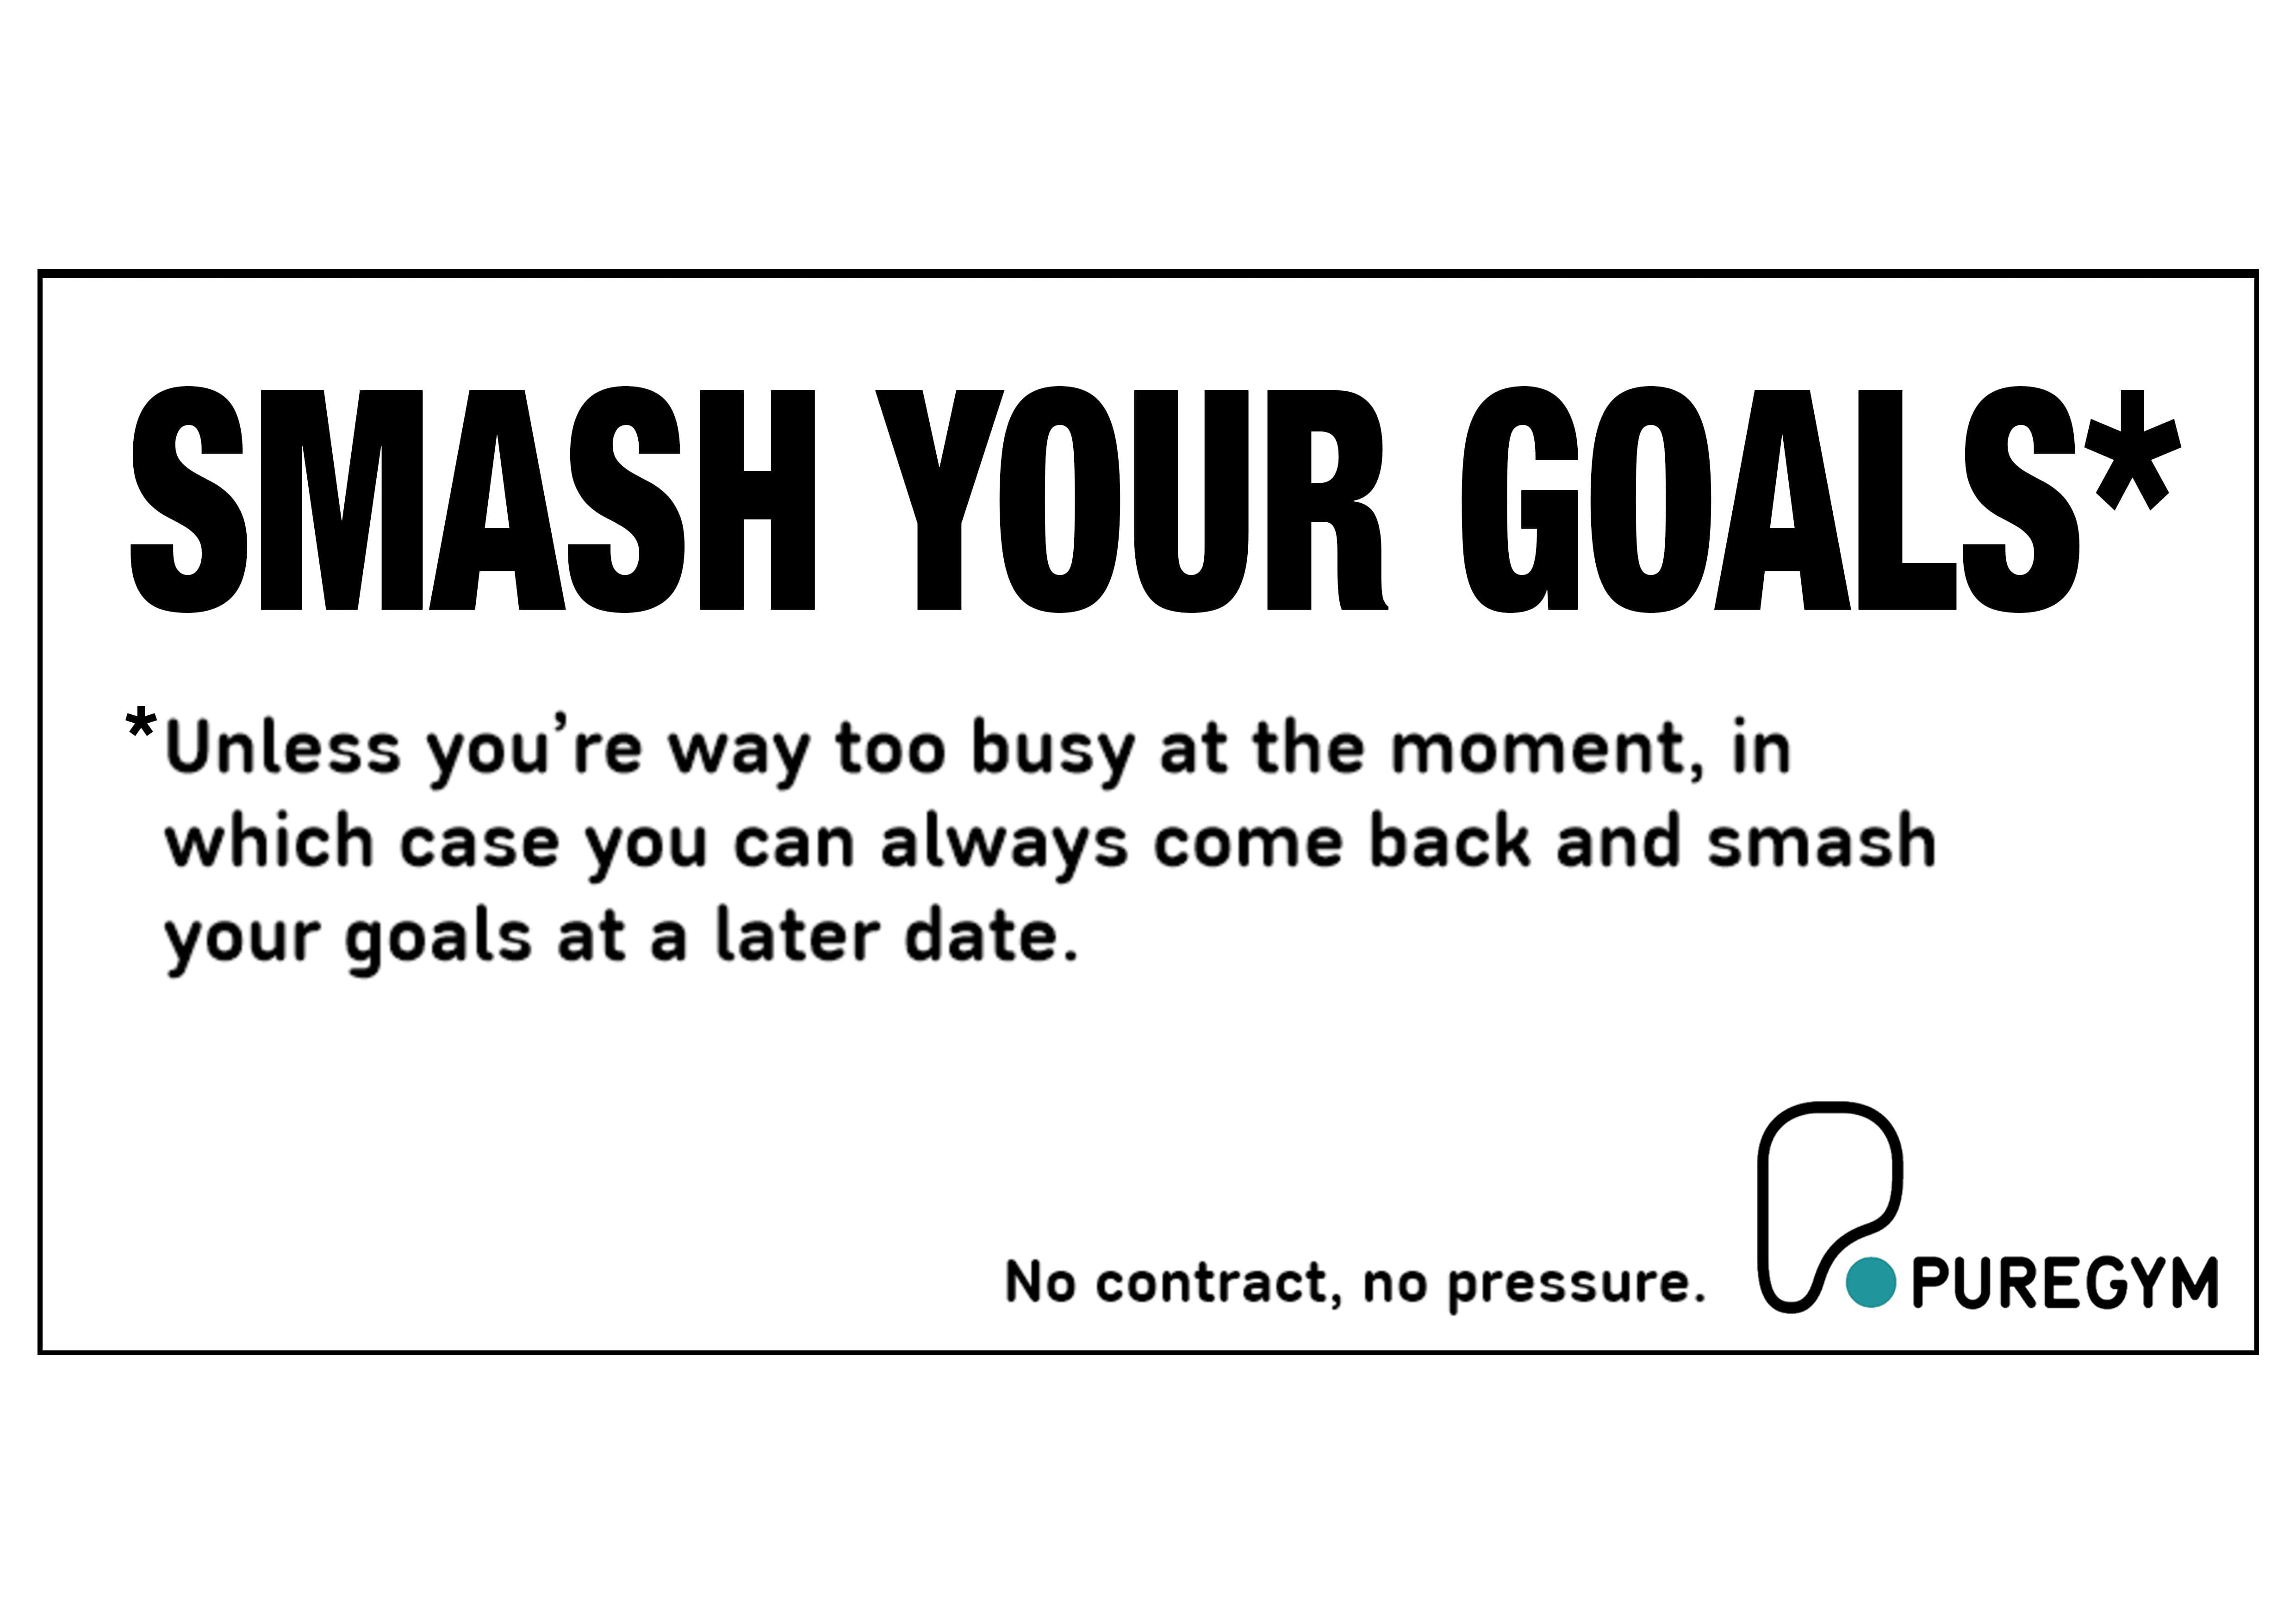 PureGym Billboard ad that reads: Smash your goals